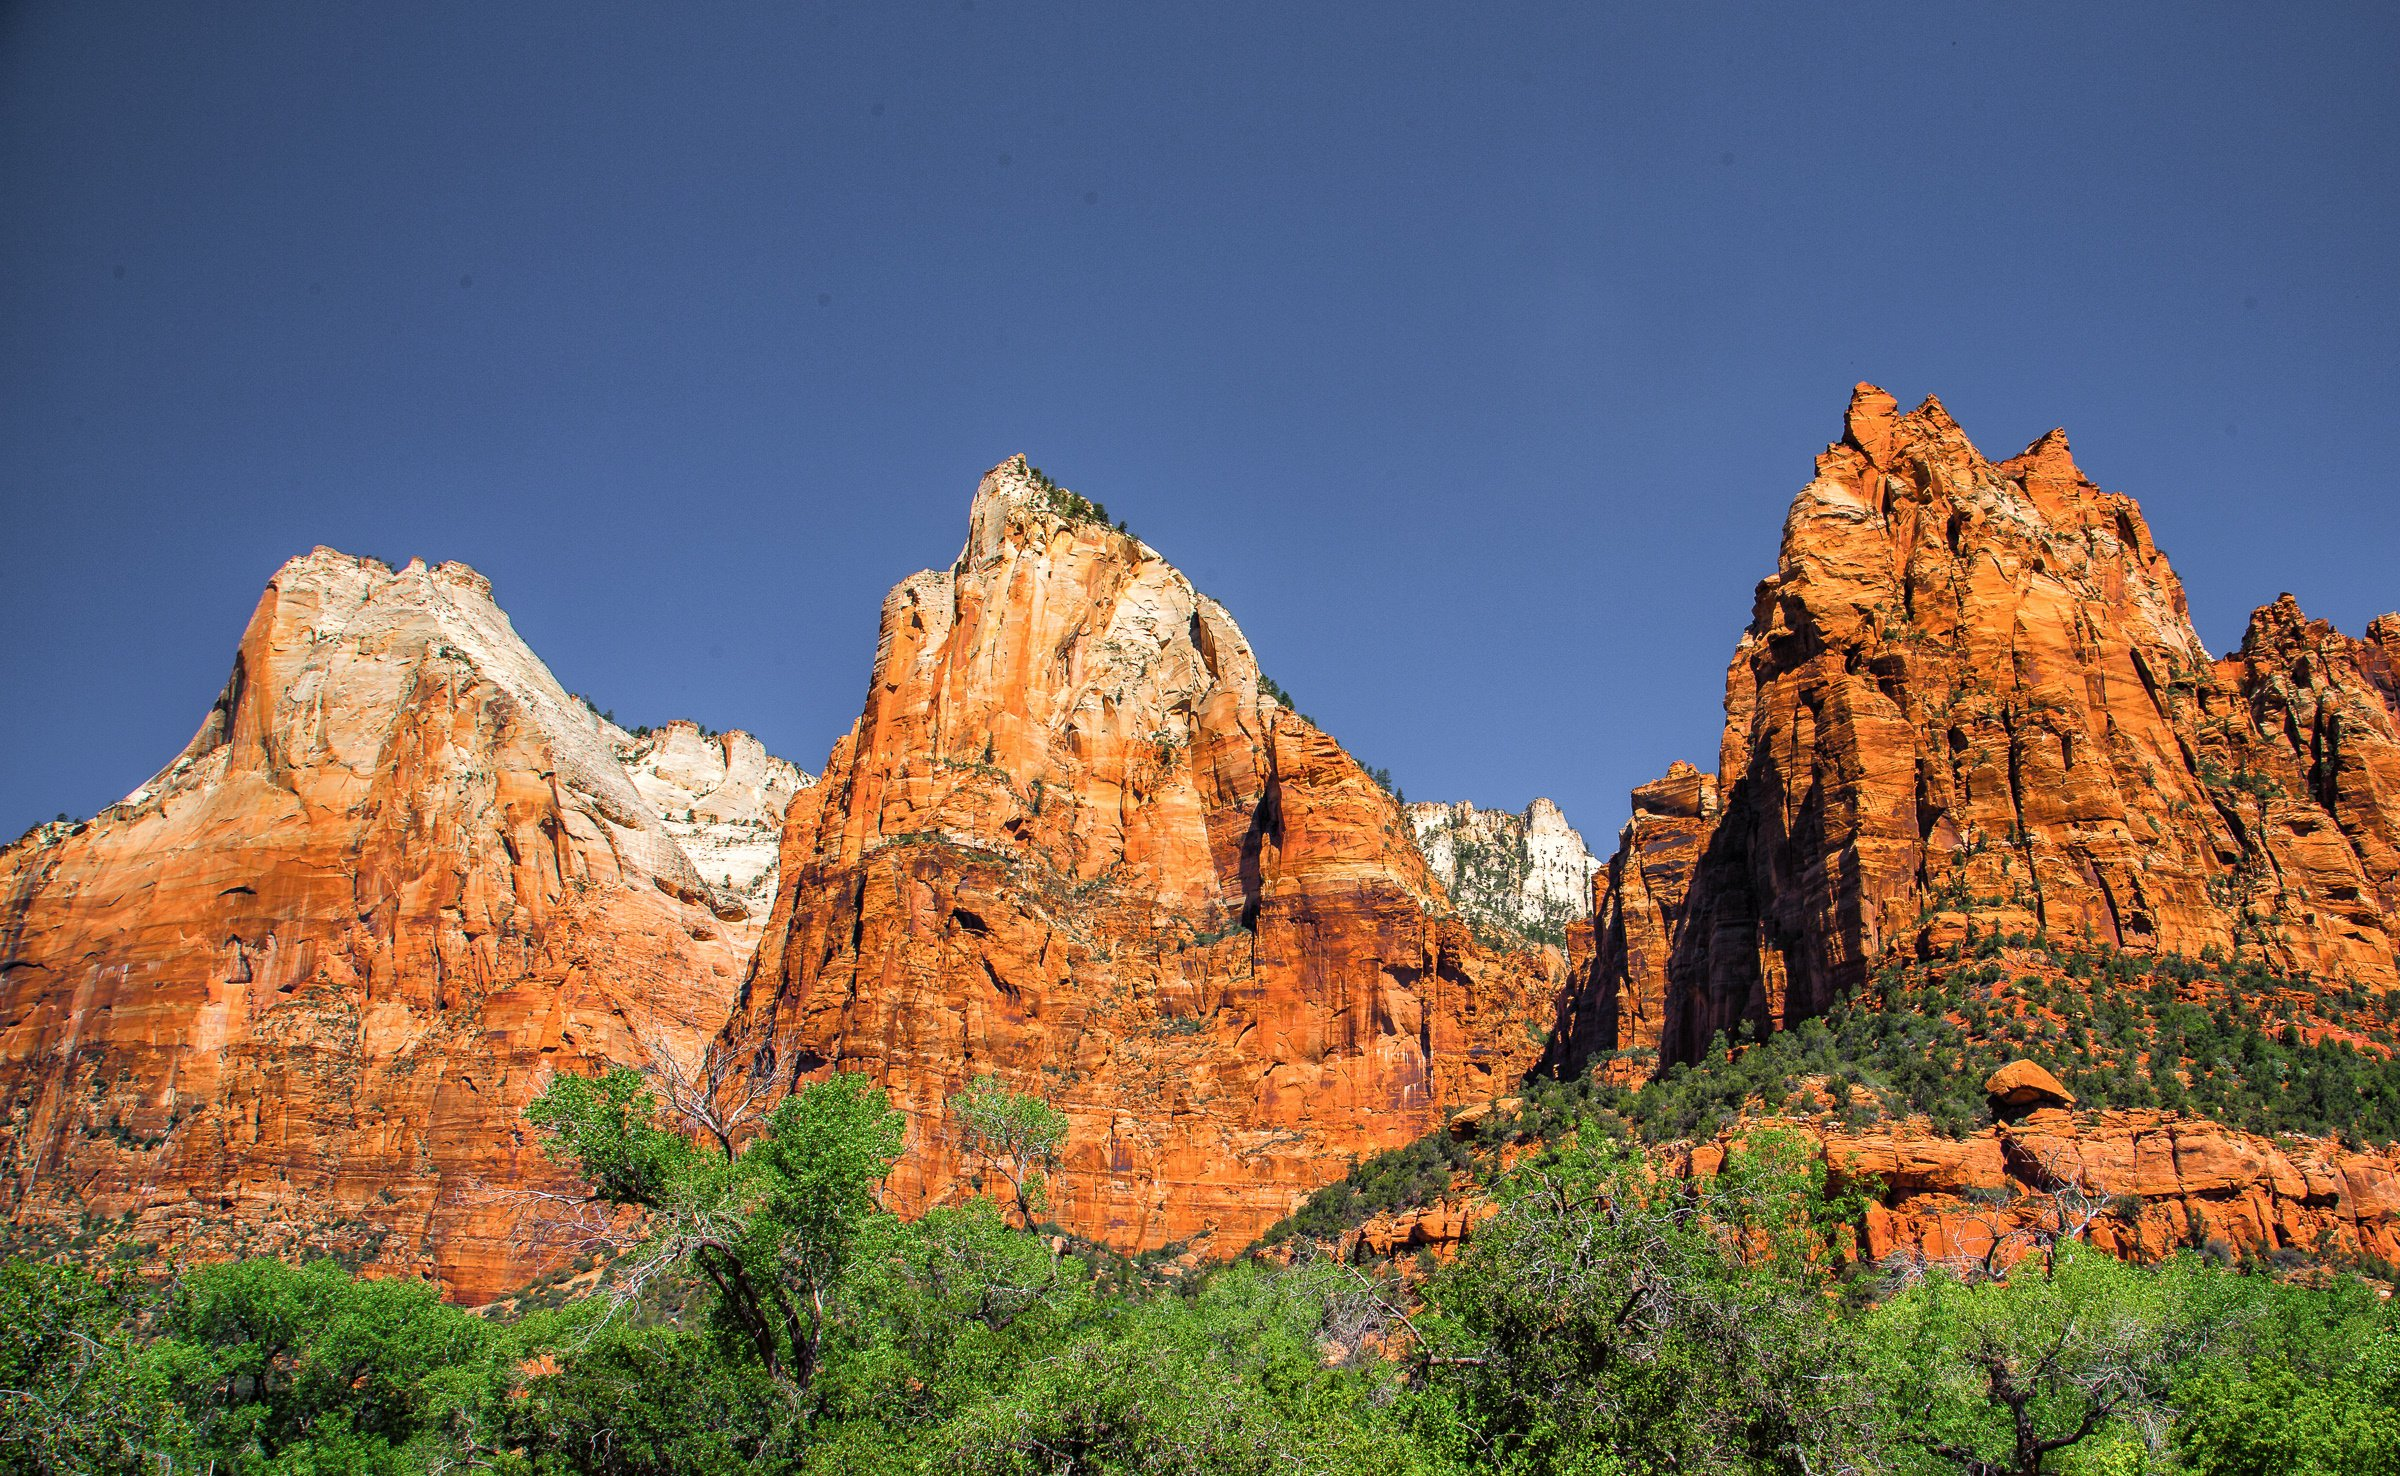 zion national park utah desert mountains landscape wallpaper 2400x1476